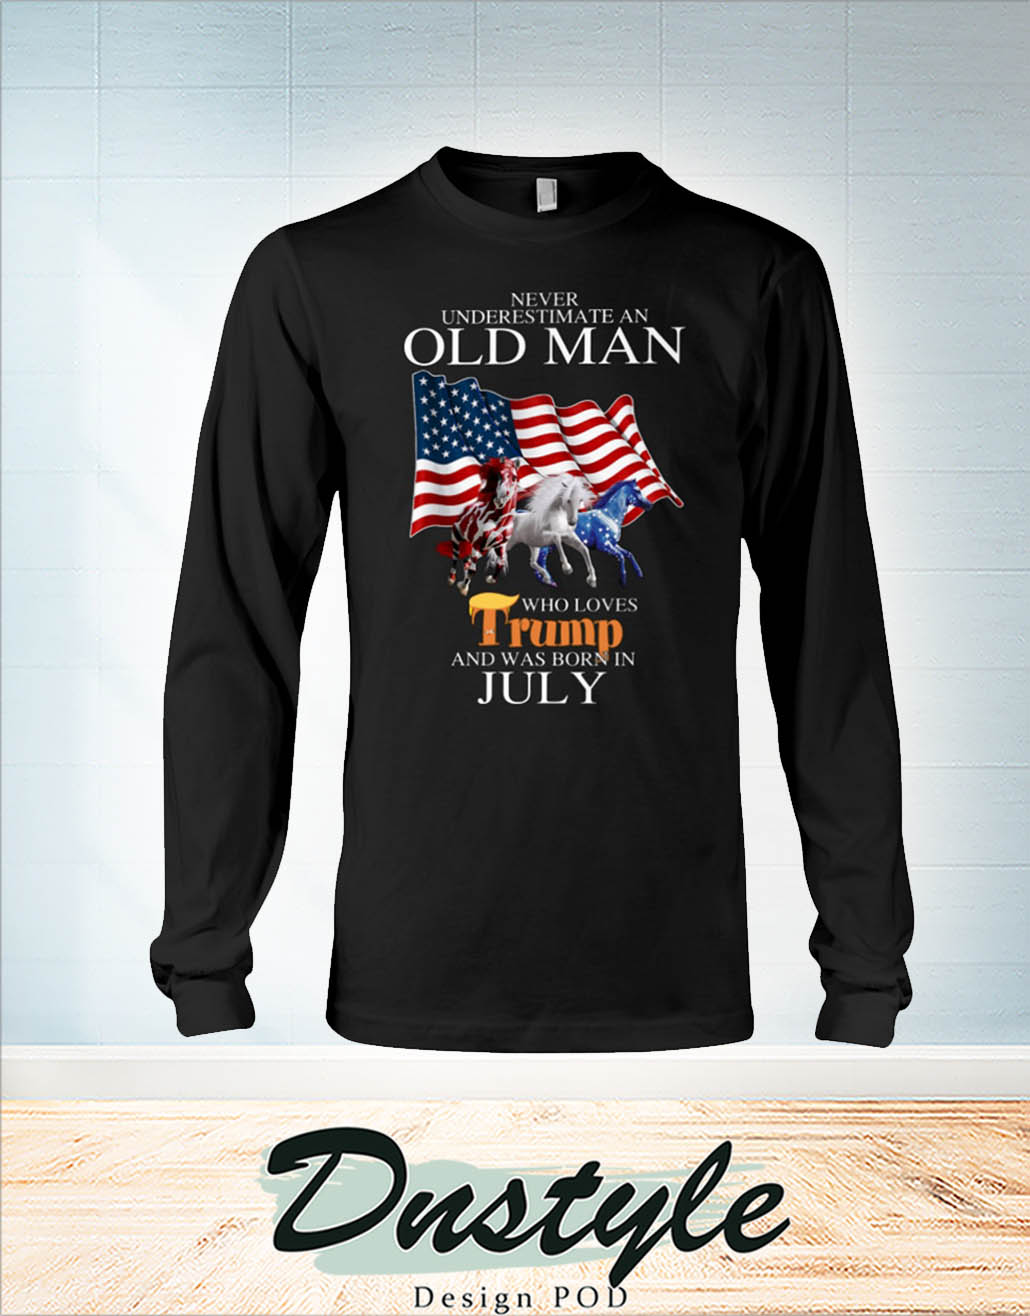 Horse freedom never underestimate an old man who loves trump and was born in july long sleeve